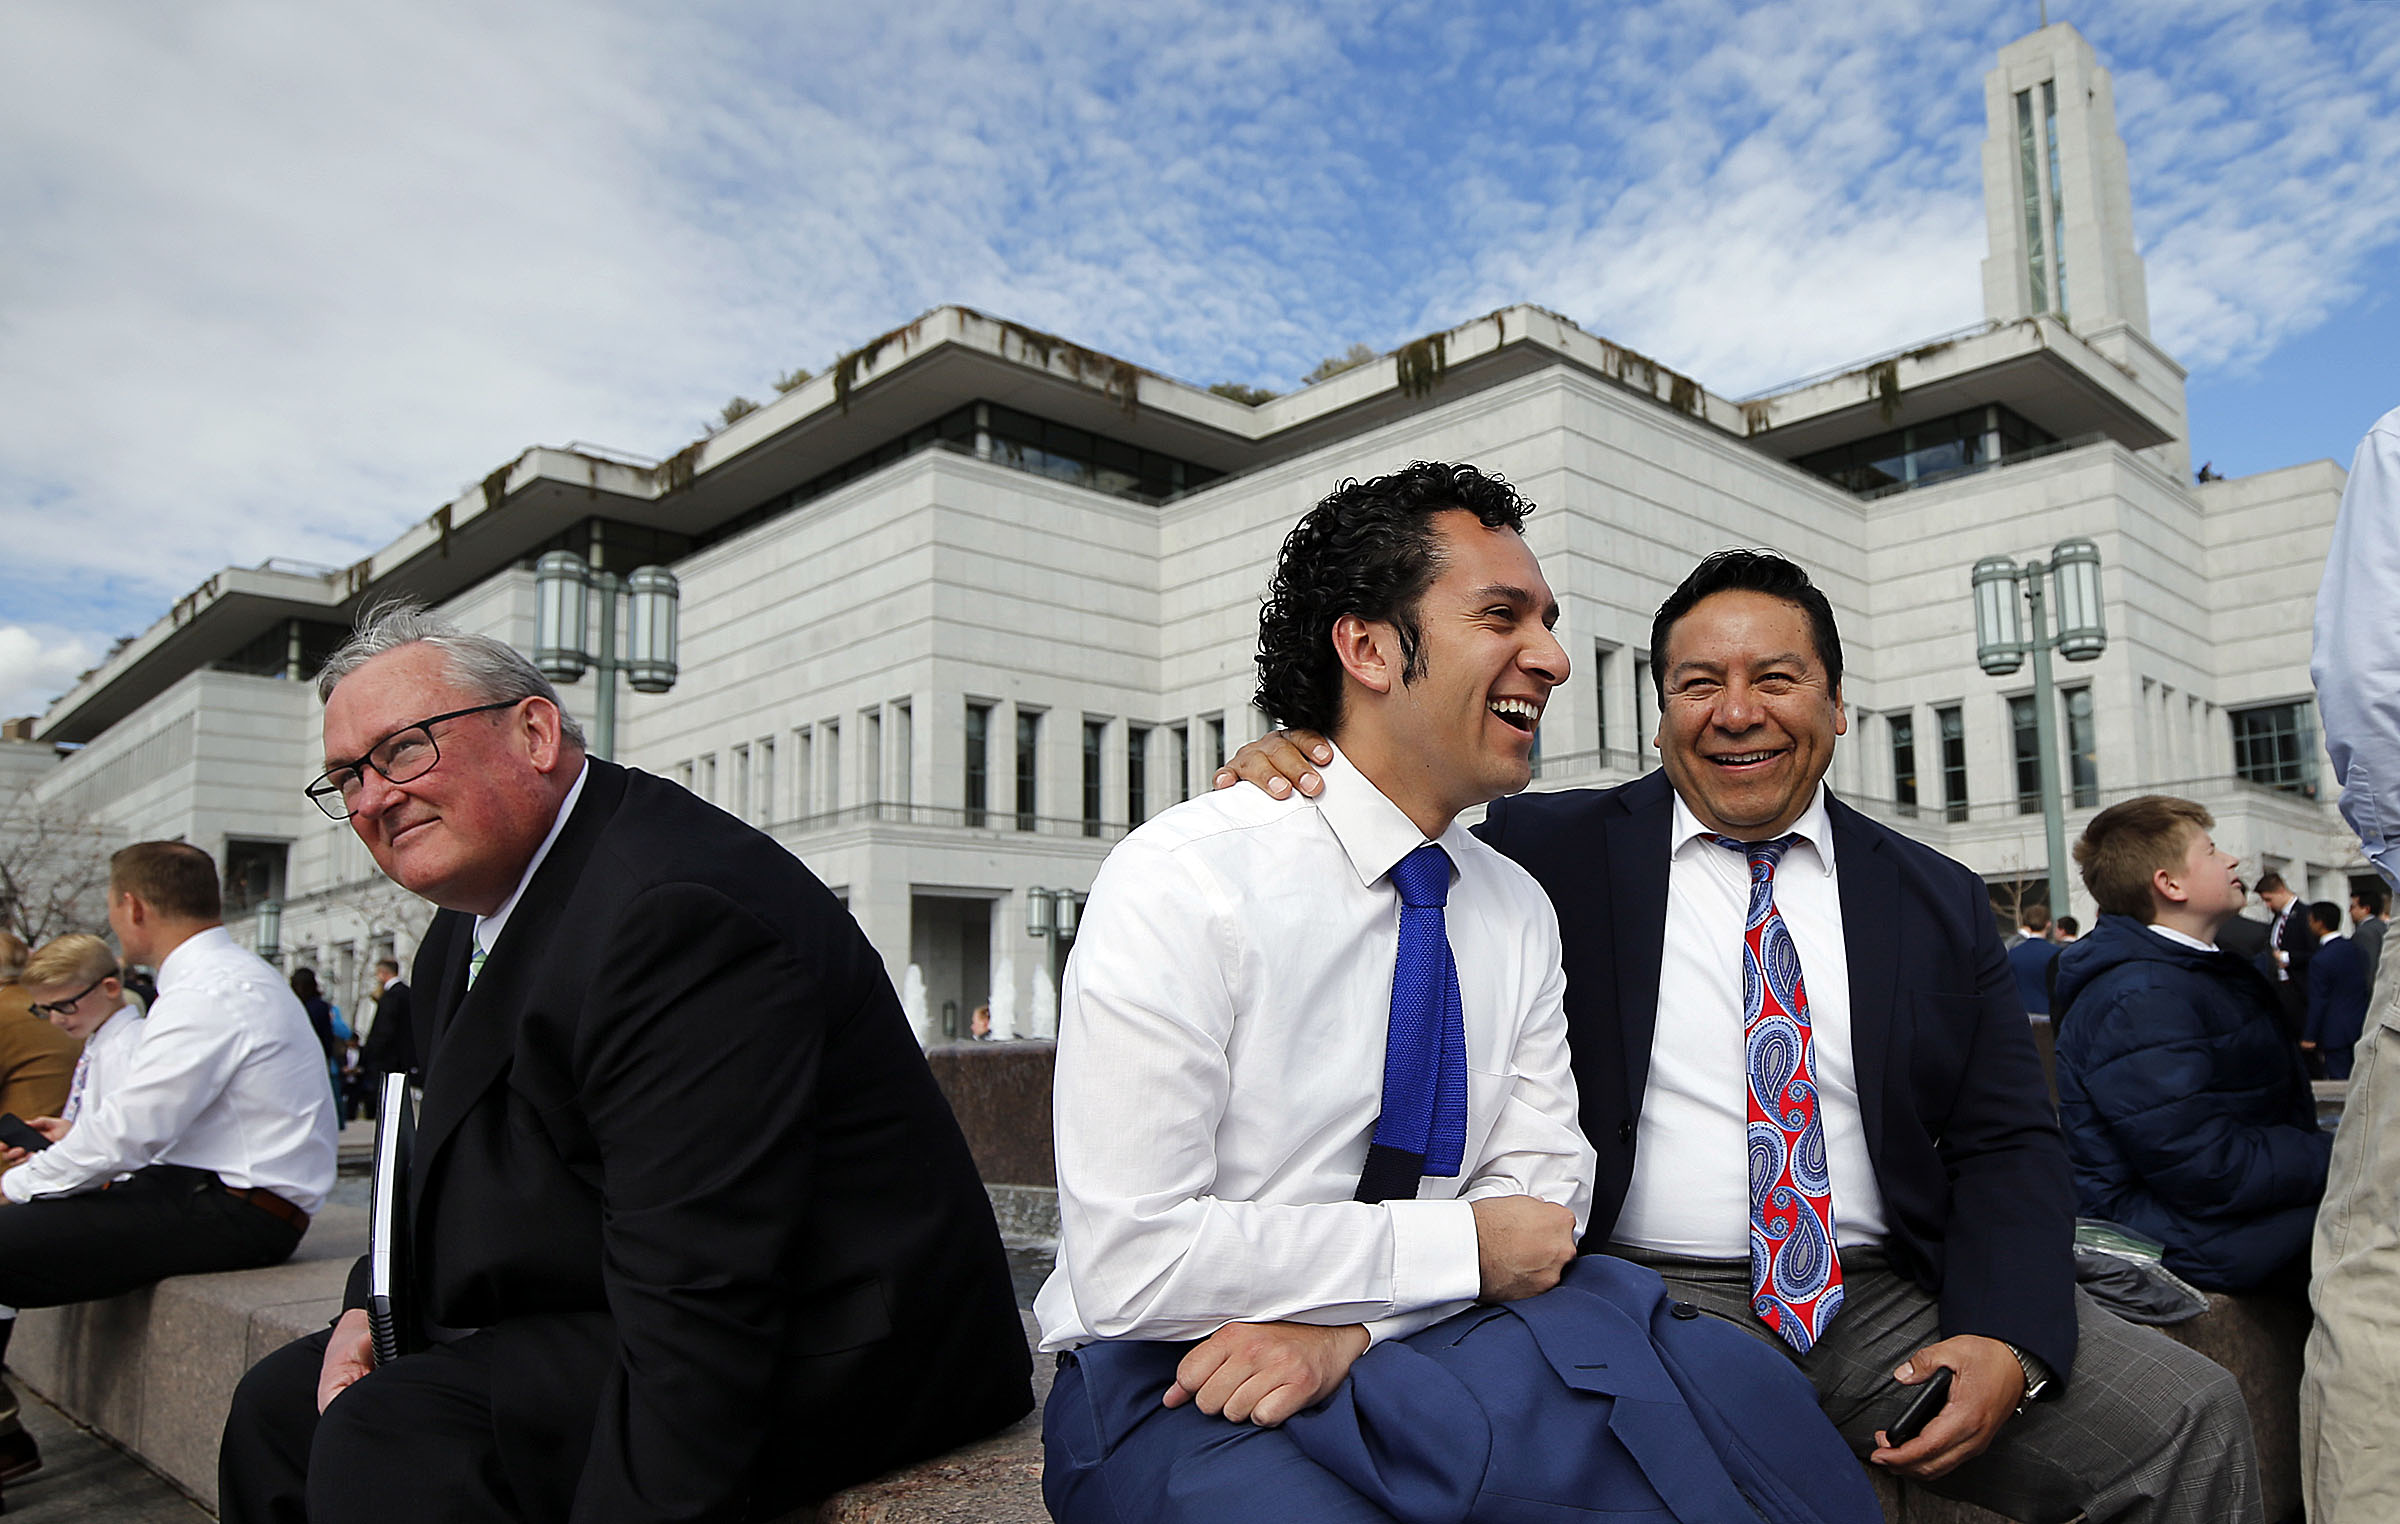 Mario Hernandez, right, laughs with his son, Ray, before Saturday's priesthood session of the 189th Annual General Conference of The Church of Jesus Christ of Latter-day Saints in the Conference Center in Salt Lake City on Saturday, April 6, 2019.